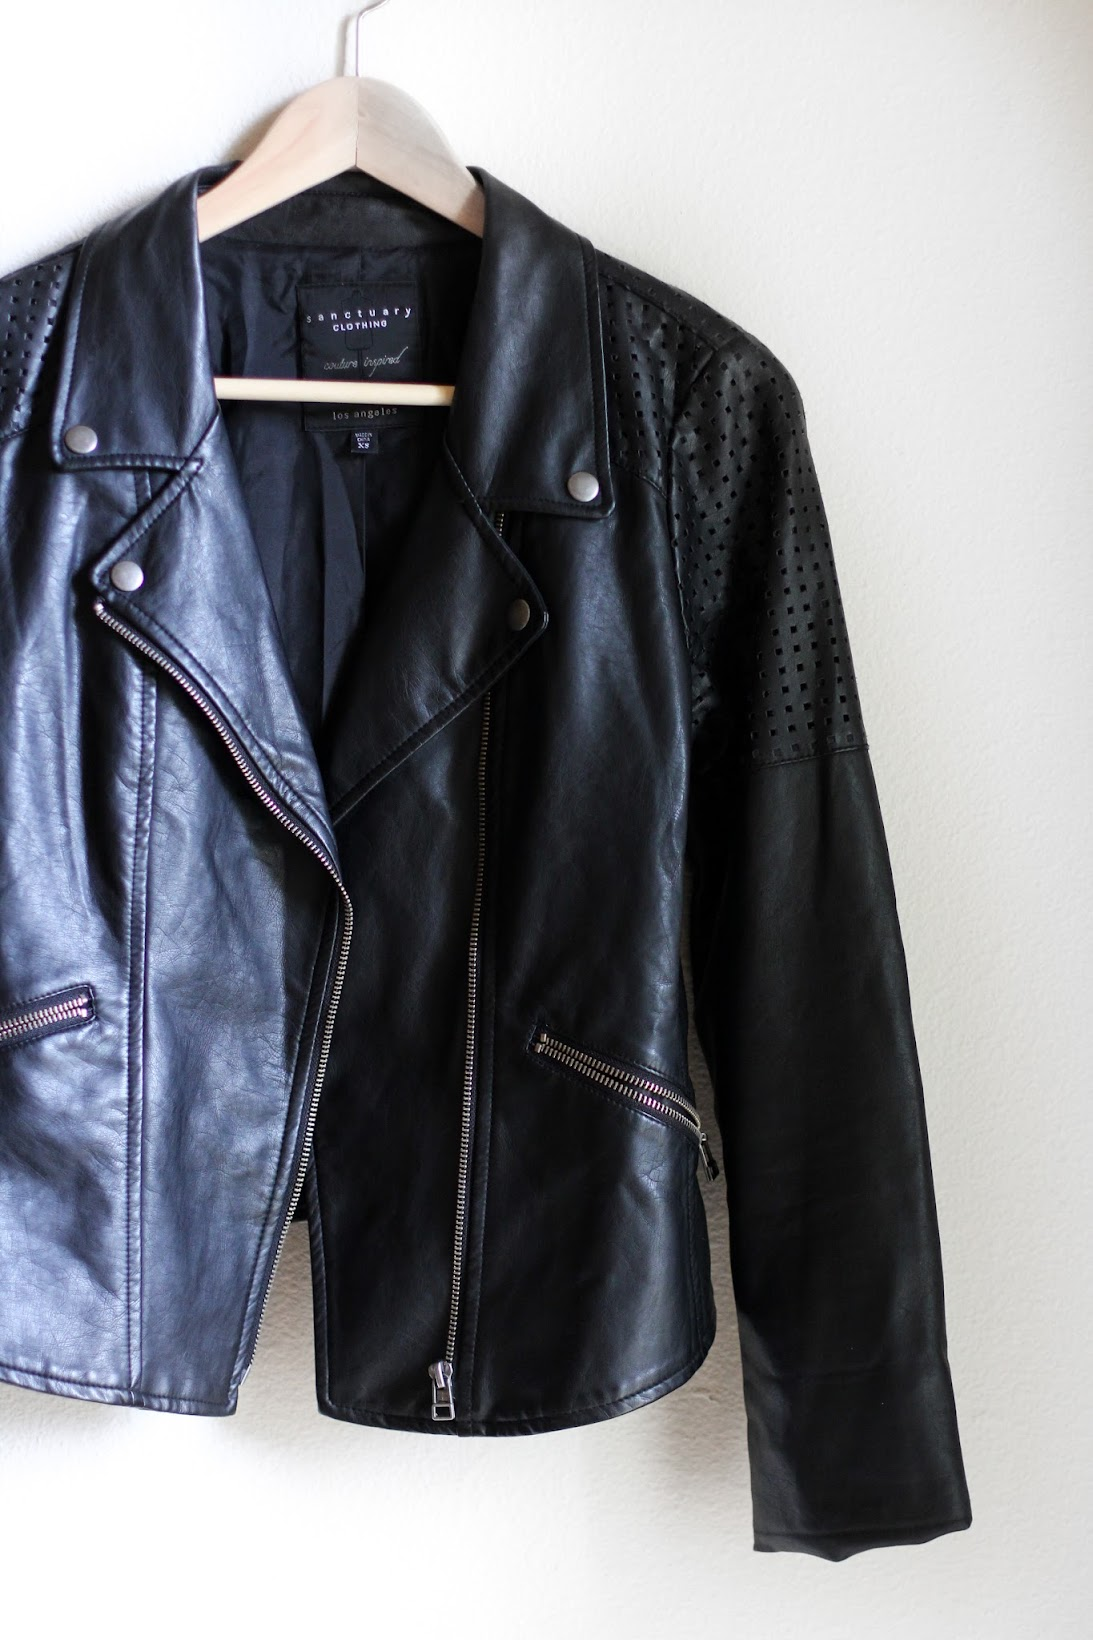 Leather jacket care - The Tips This Material Can Be Difficult And Time Consuming To Take Care Of But There S Nothing Better Than Nice Soft Buttery Leather